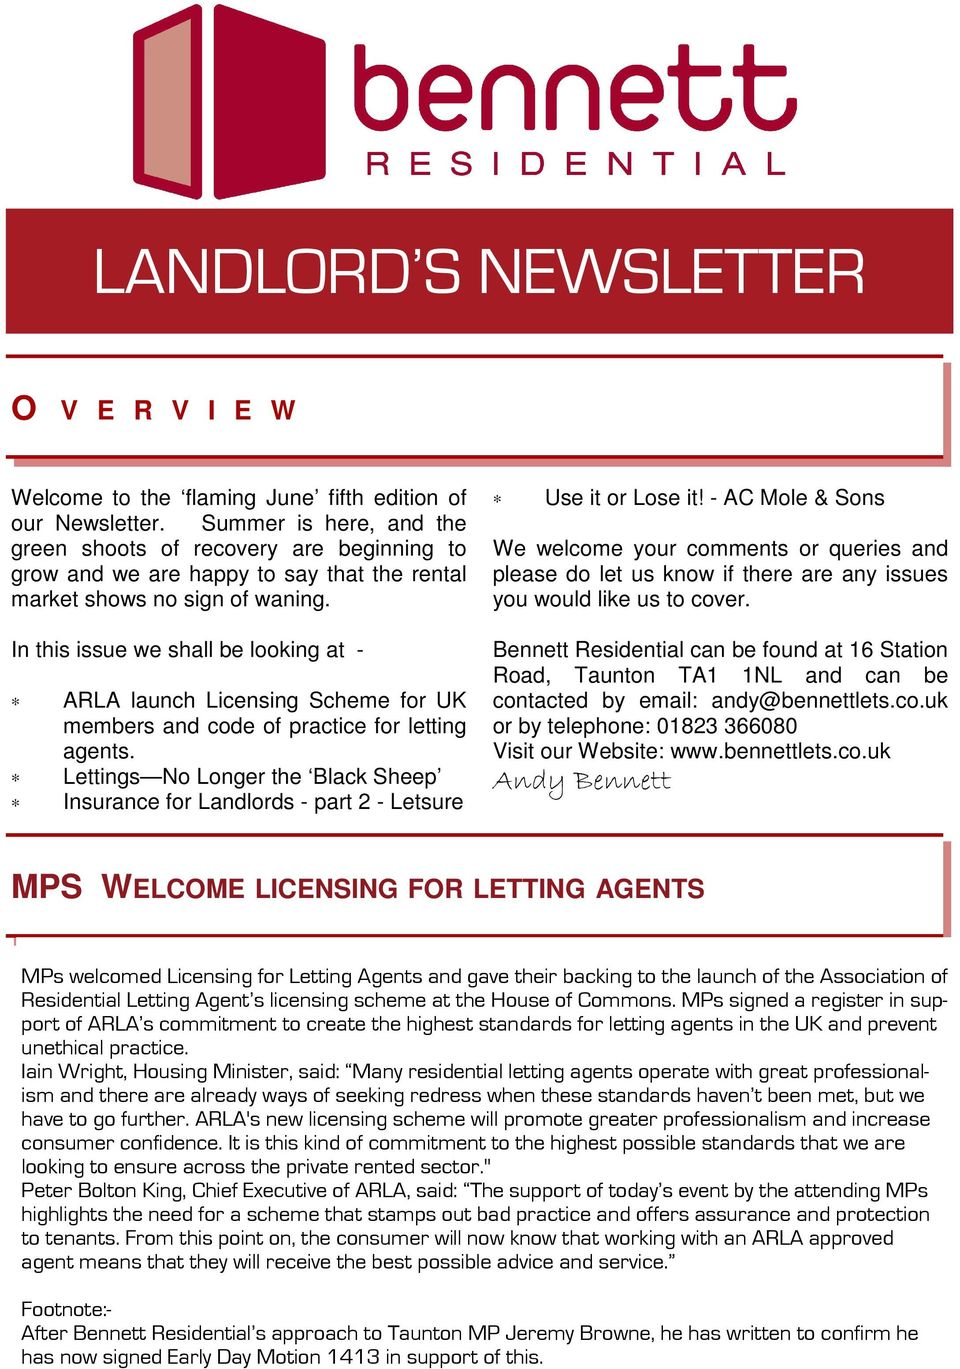 In this issue we shall be looking at - ARLA launch Licensing Scheme for UK members and code of practice for letting agents.